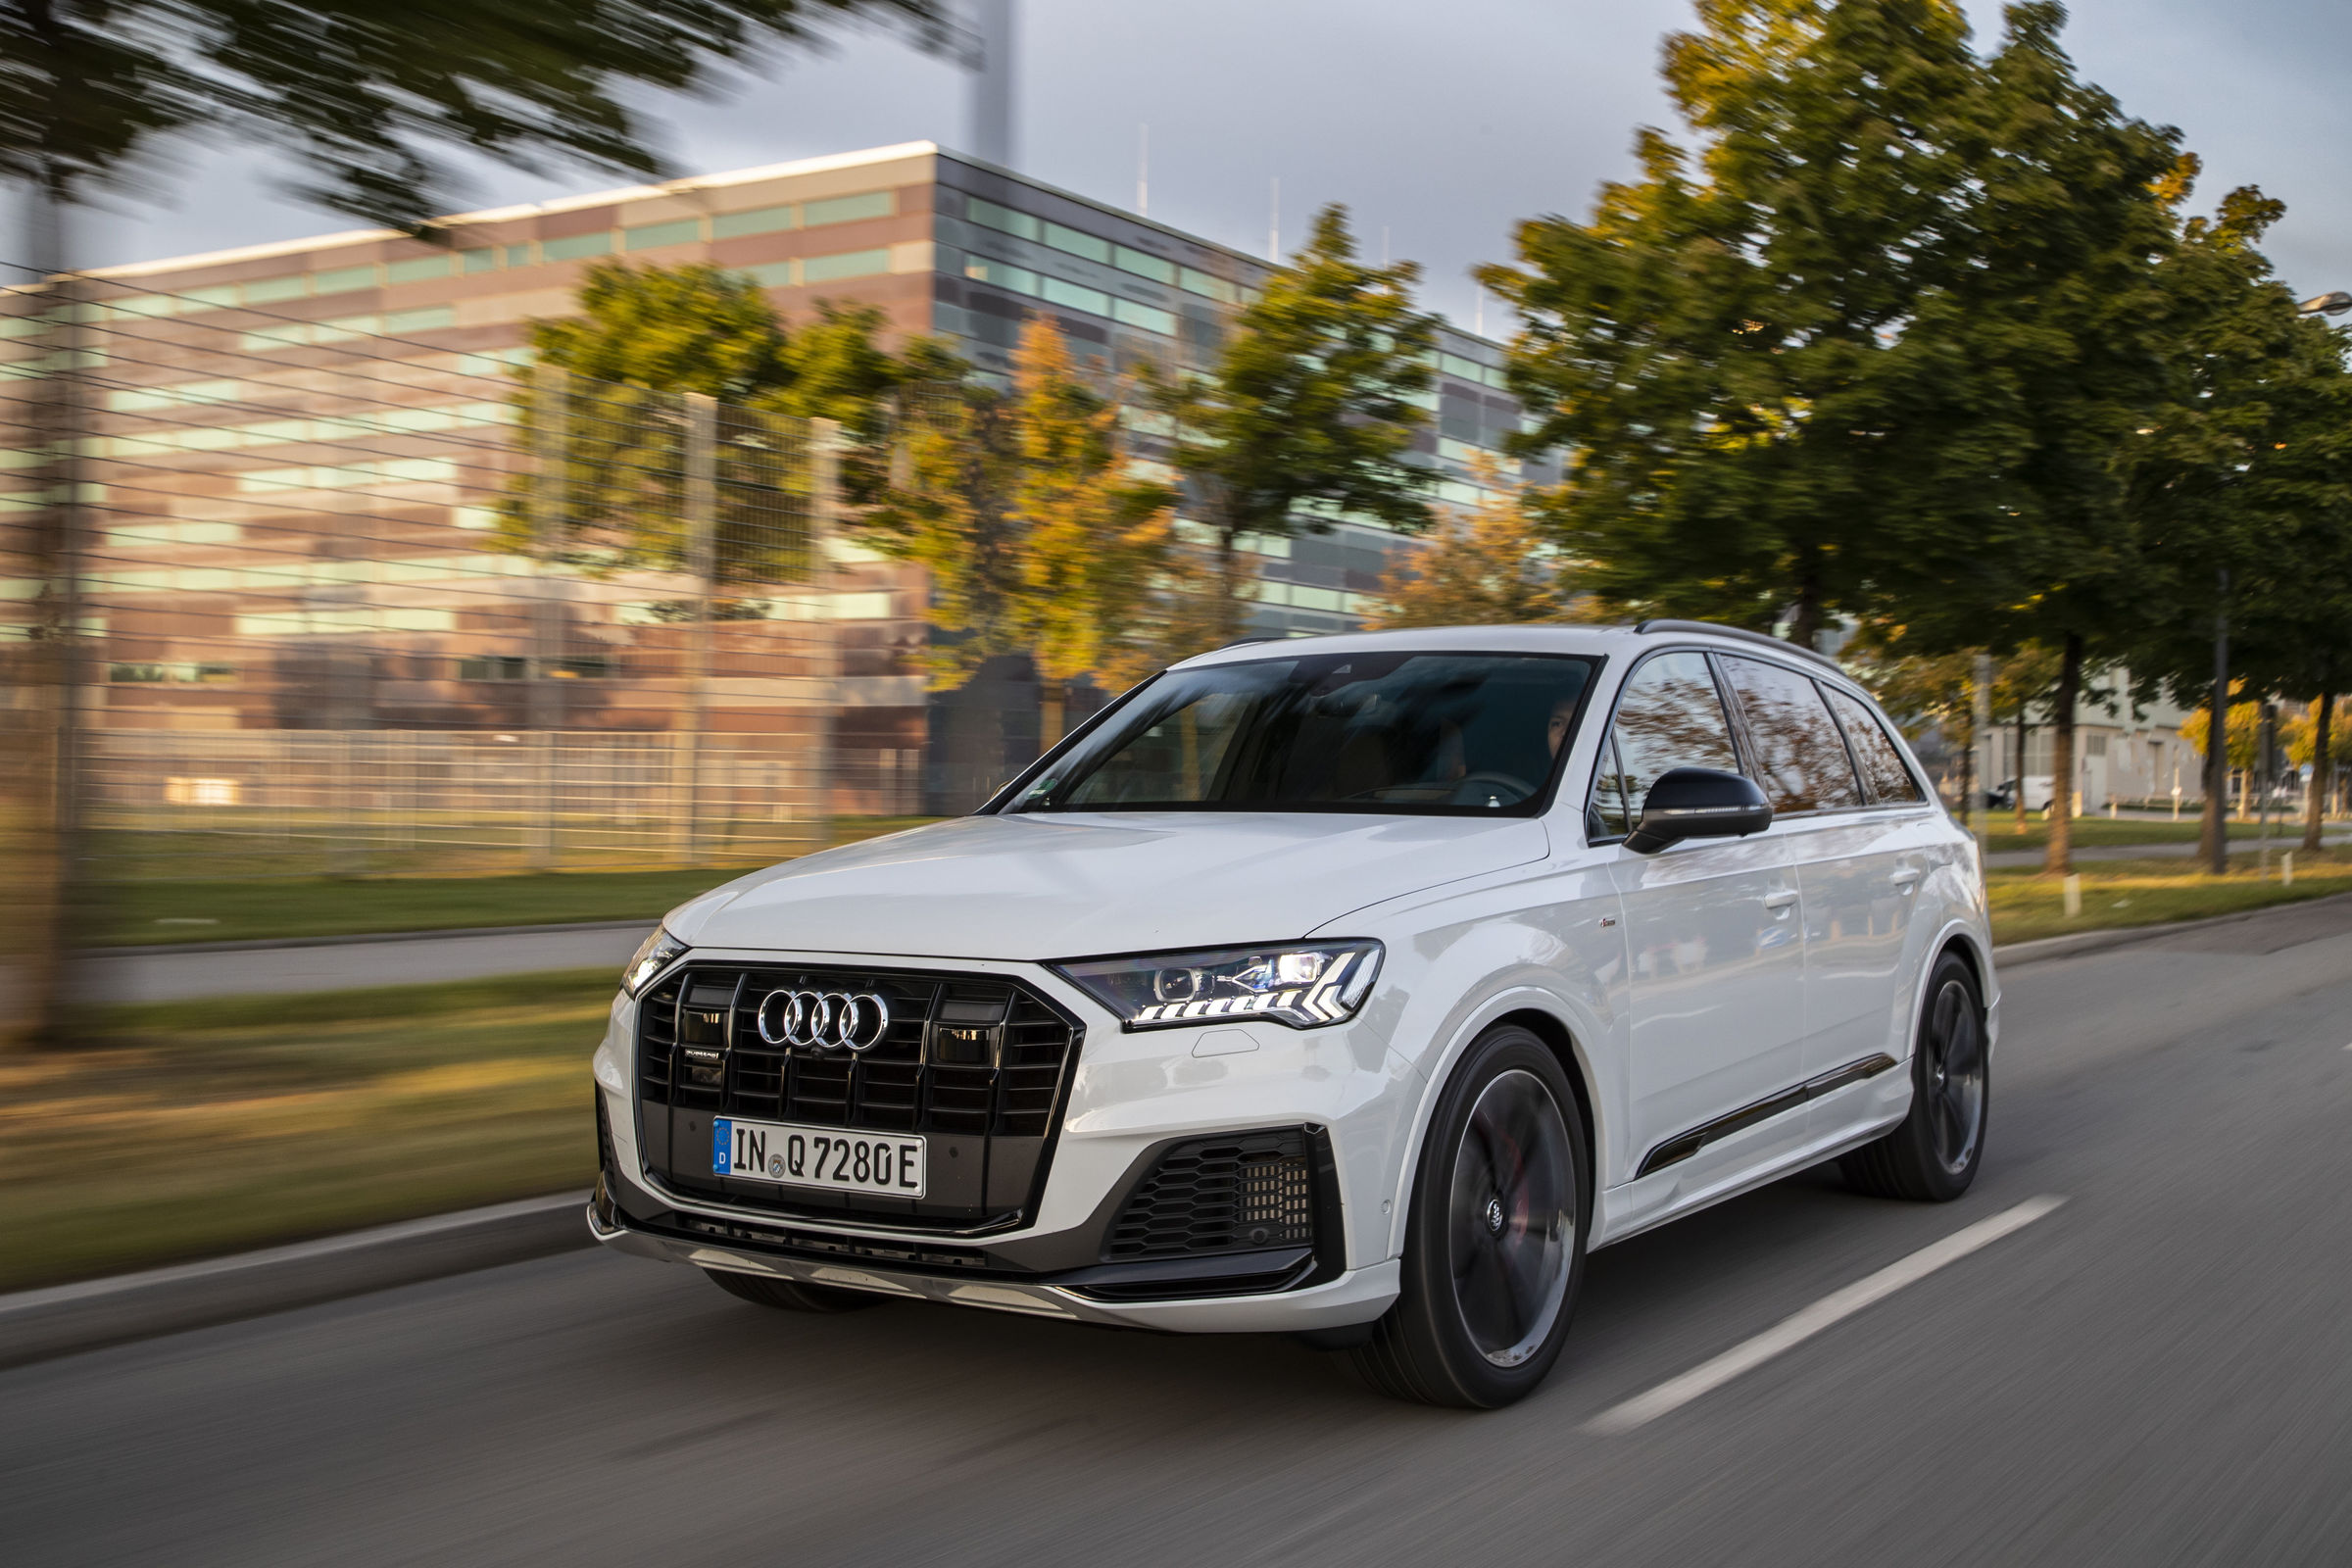 audi-electrifies-q7-with-two-phev-models-the-55-tfsie-and-60-tfsie-139629_1